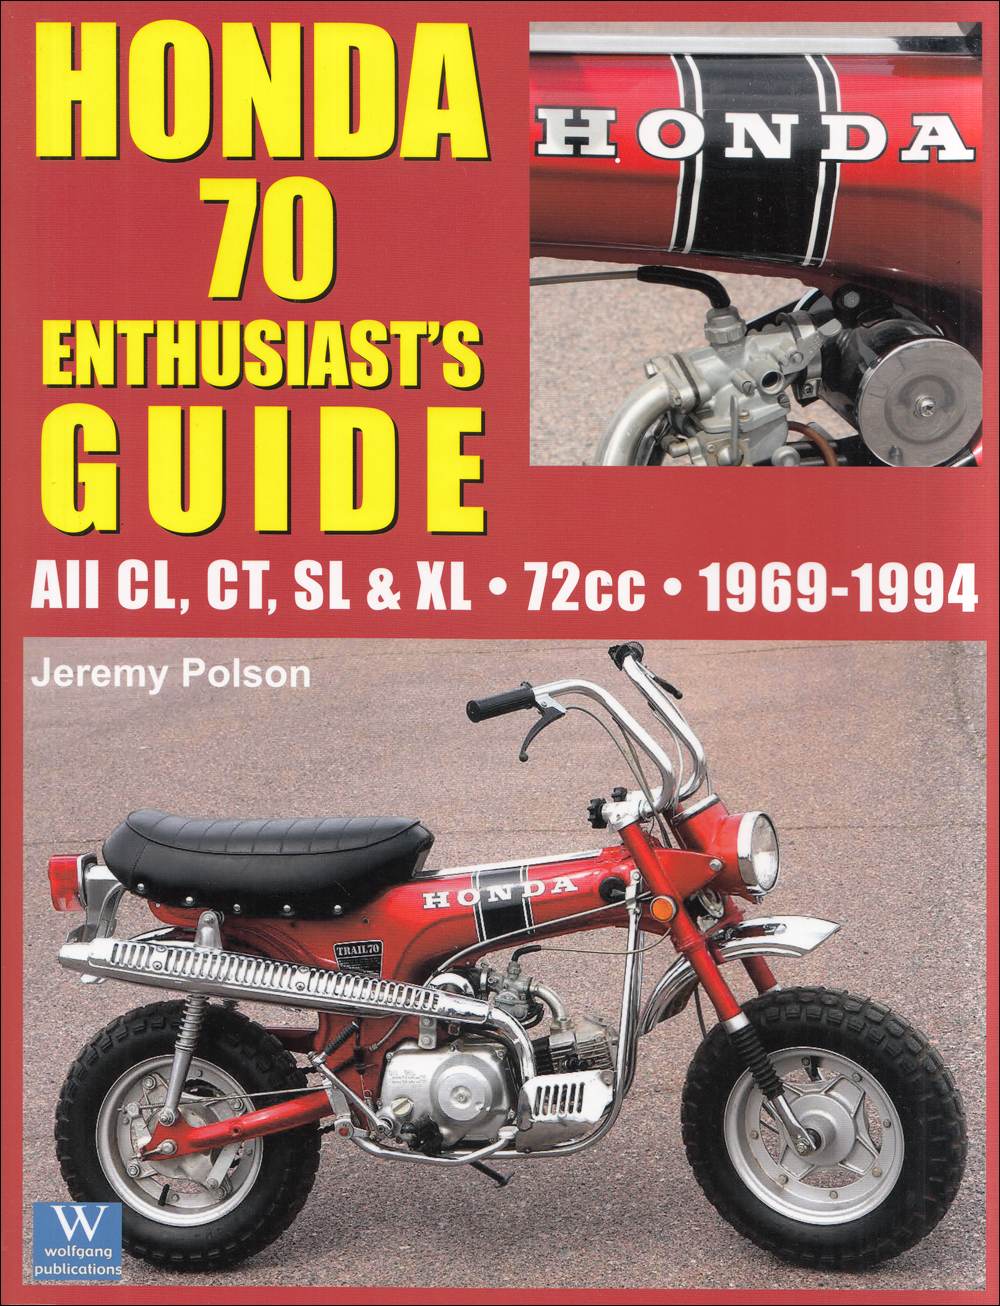 1971 1976 Honda Xr75 Sl70 Repair Shop Manual Cycleserv Cl70 Wiring Diagram Related Products